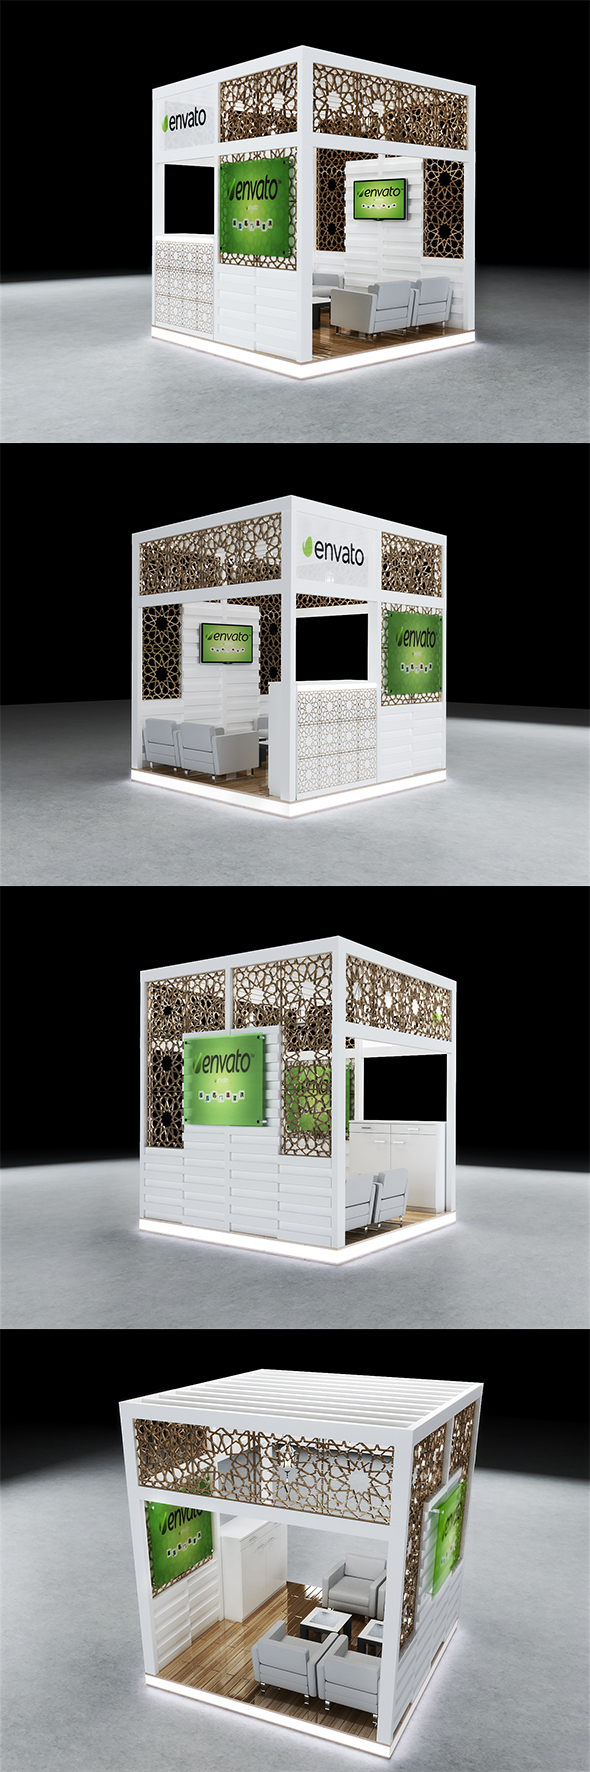 exhibition booth cg textures 3d models from 3docean